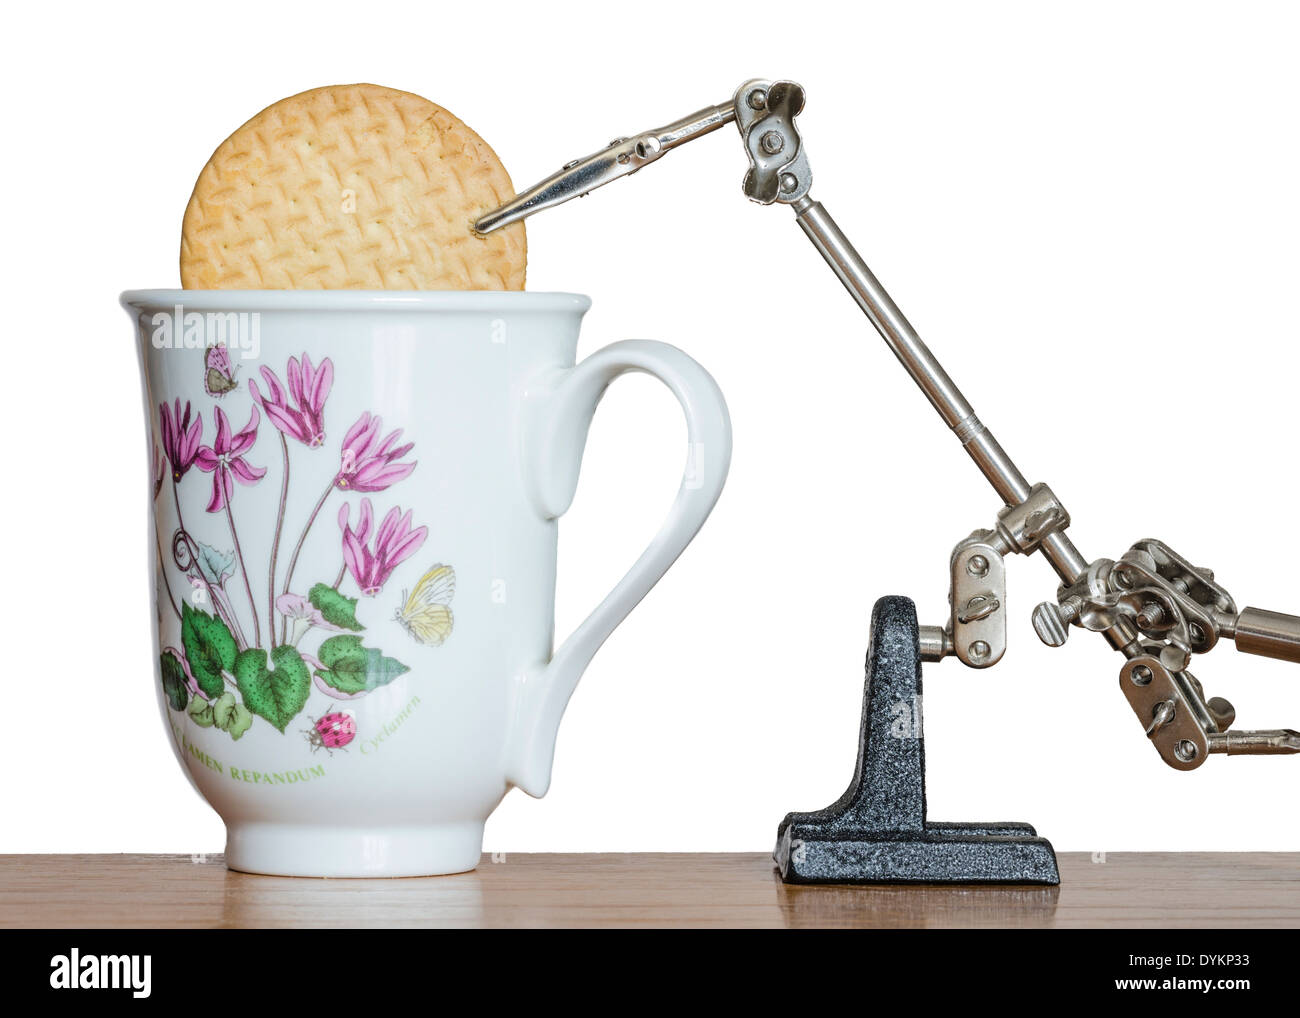 Abstract biscuit dunking robot. Obscure machine. Conceptual art. Contemporary art. Pointless invention. Labour saving. - Stock Image